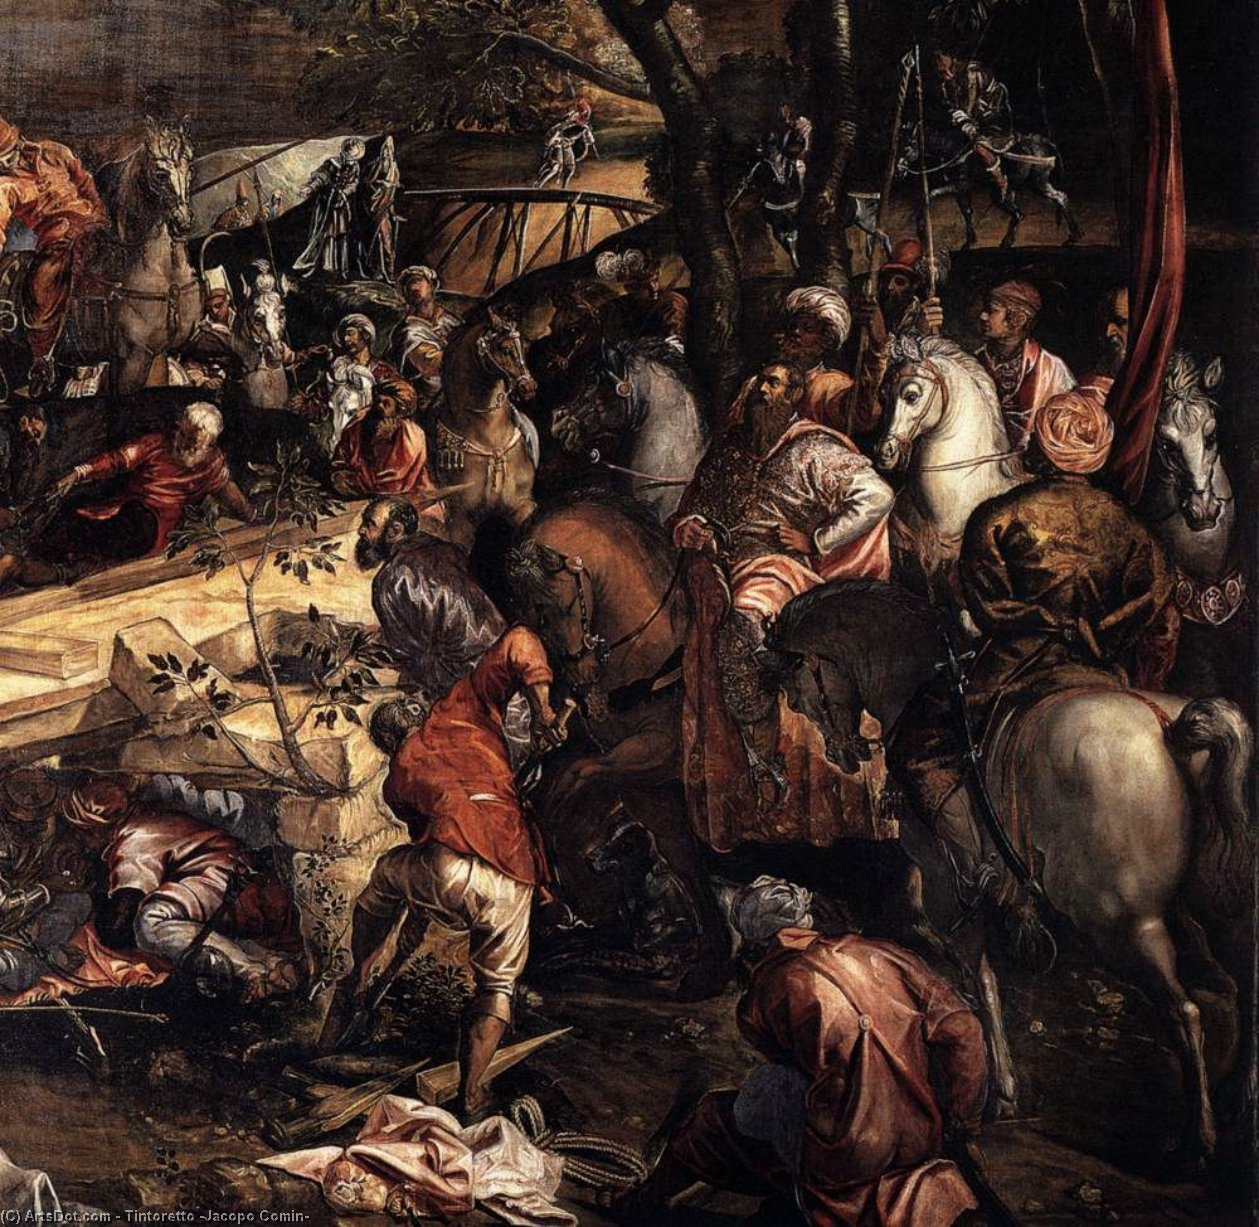 Wikioo.org - The Encyclopedia of Fine Arts - Painting, Artwork by Tintoretto (Jacopo Comin) - The Crucifixion (detail) (10)